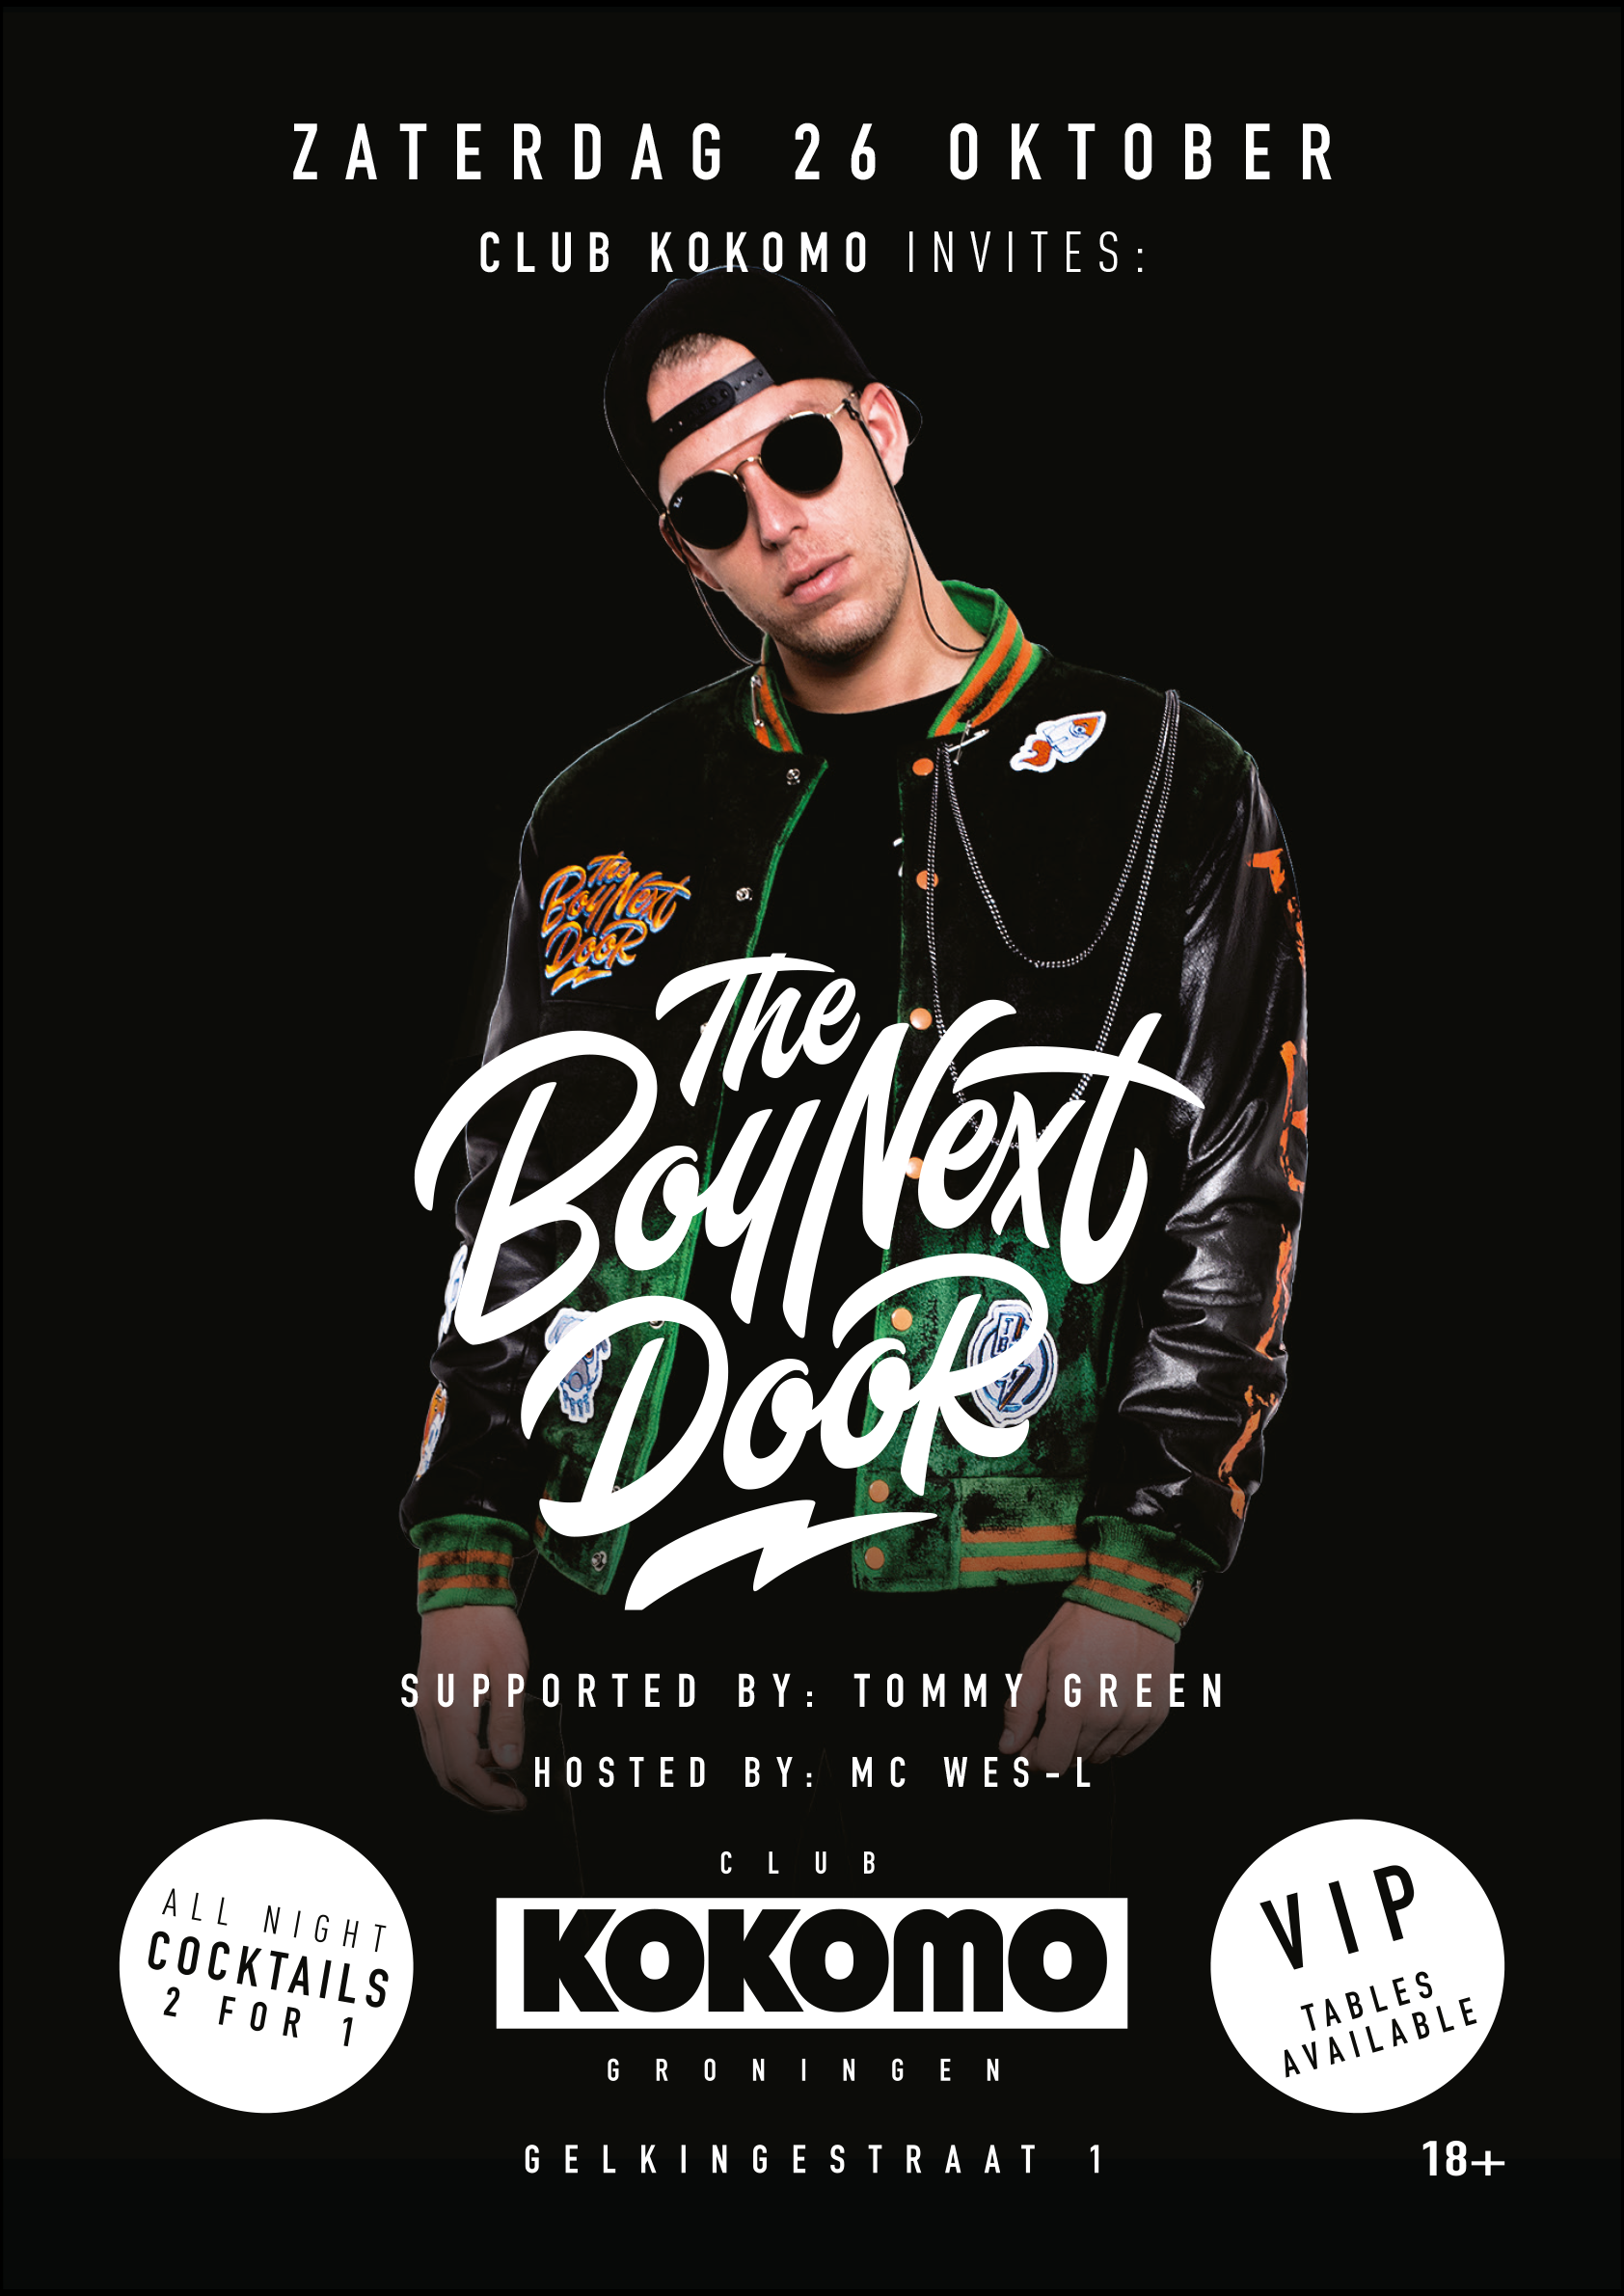 Club Kokomo Invites: The Boy Next Door